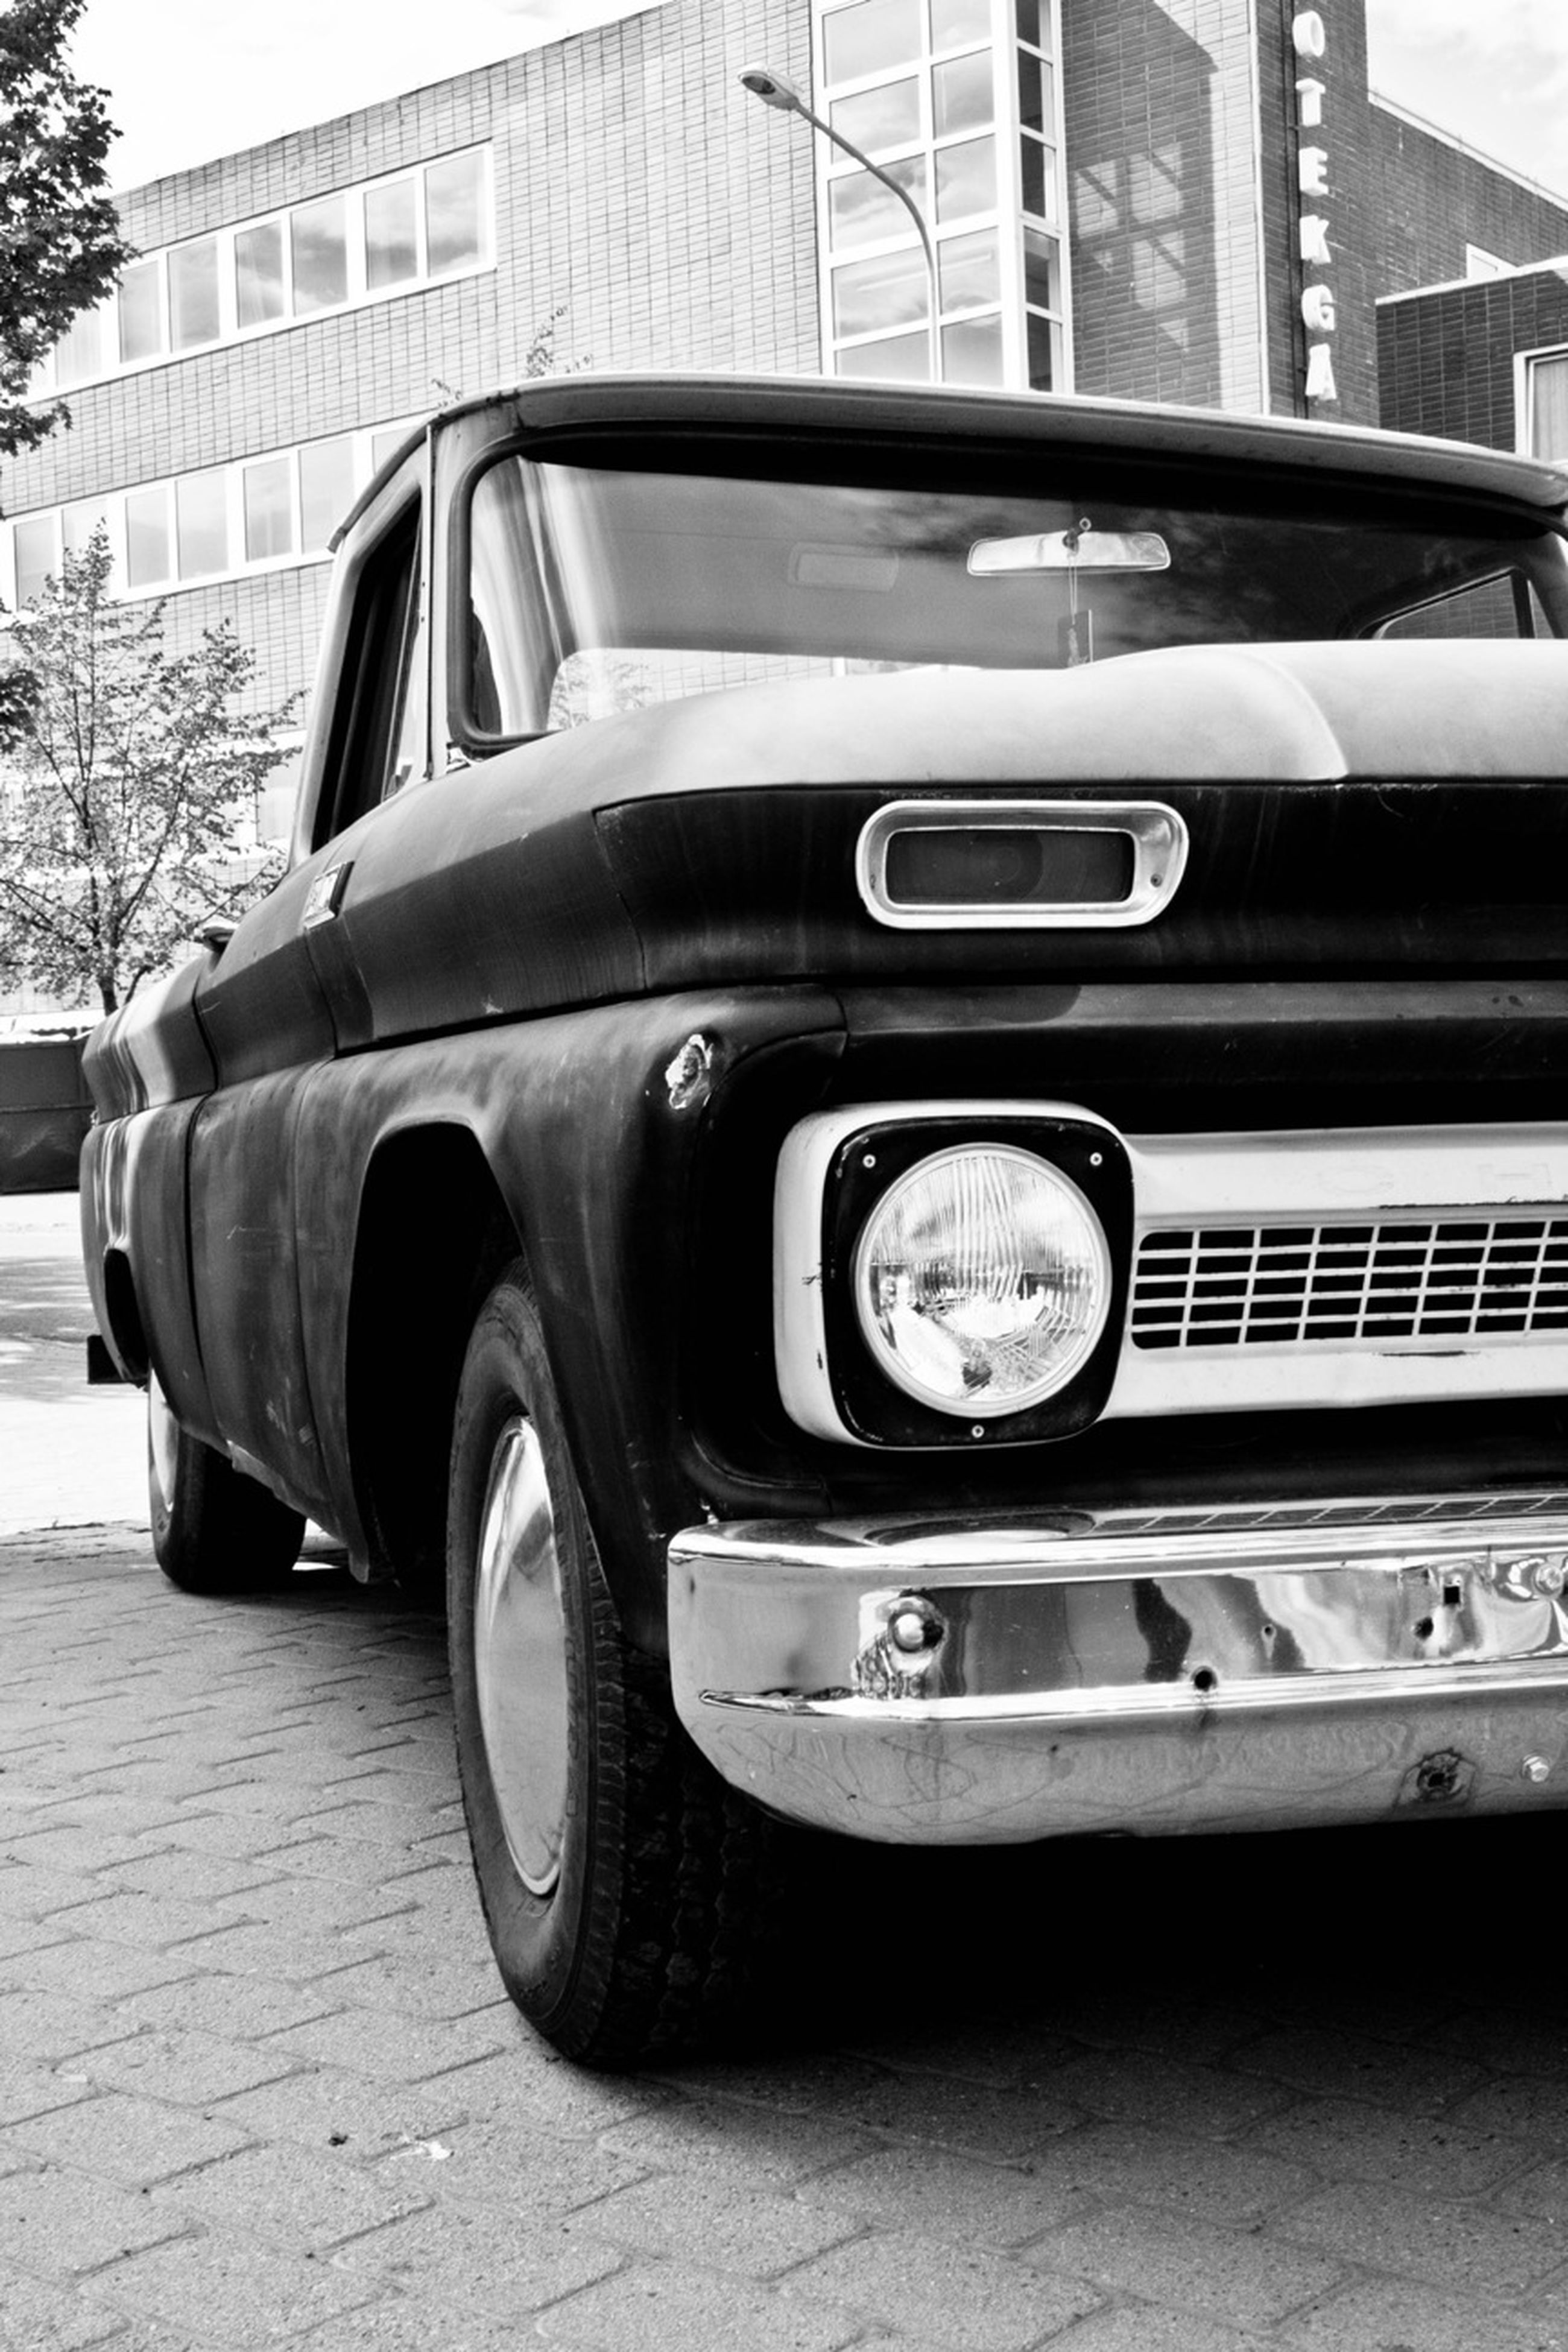 transportation, mode of transport, land vehicle, car, building exterior, architecture, built structure, street, travel, vintage car, stationary, city, road, vehicle, day, on the move, outdoors, bus, headlight, no people